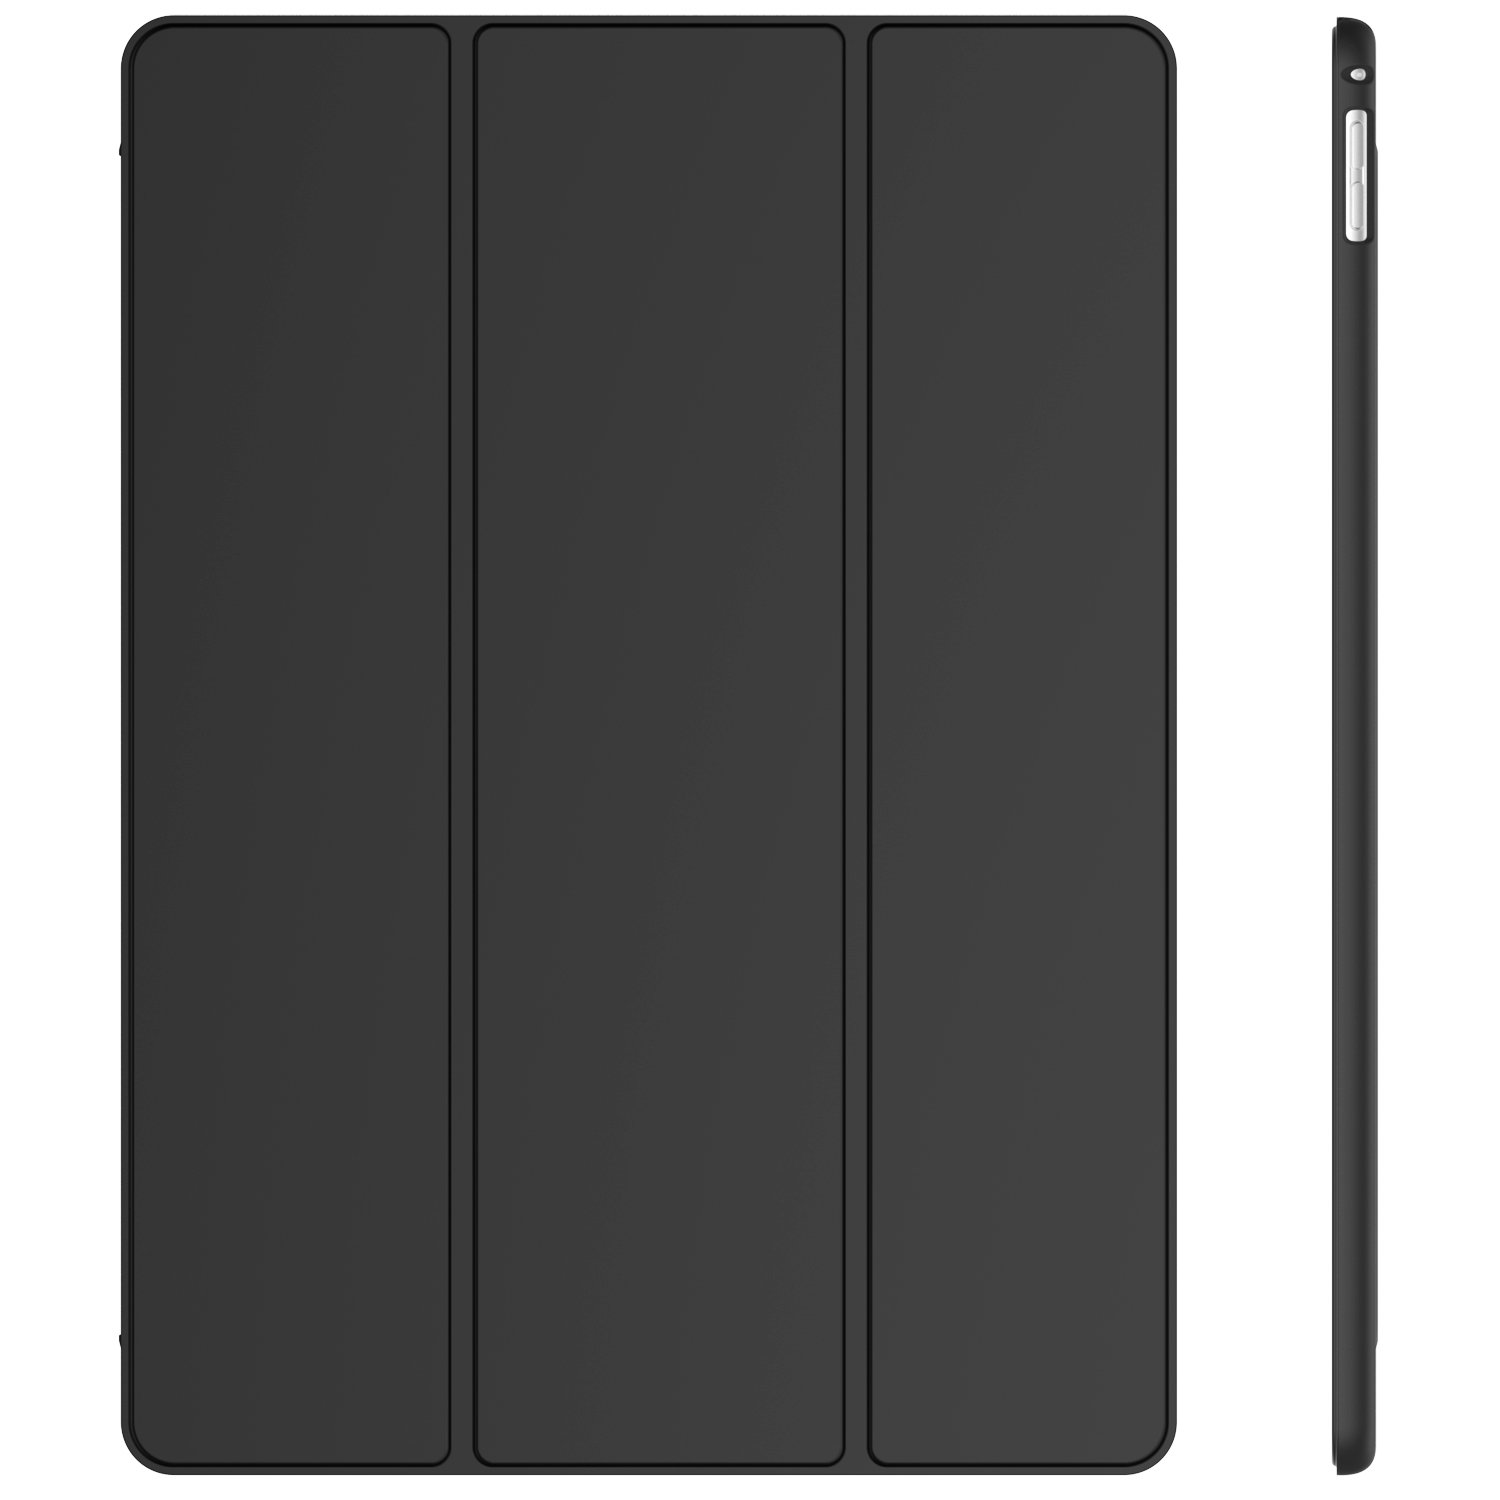 JETech Case for iPad Pro 12.9-Inch (2017 Model), Smart Cover with Auto Sleep/Wake, Black 3054-CS-NEW-iPad-Pro-12.9-BK